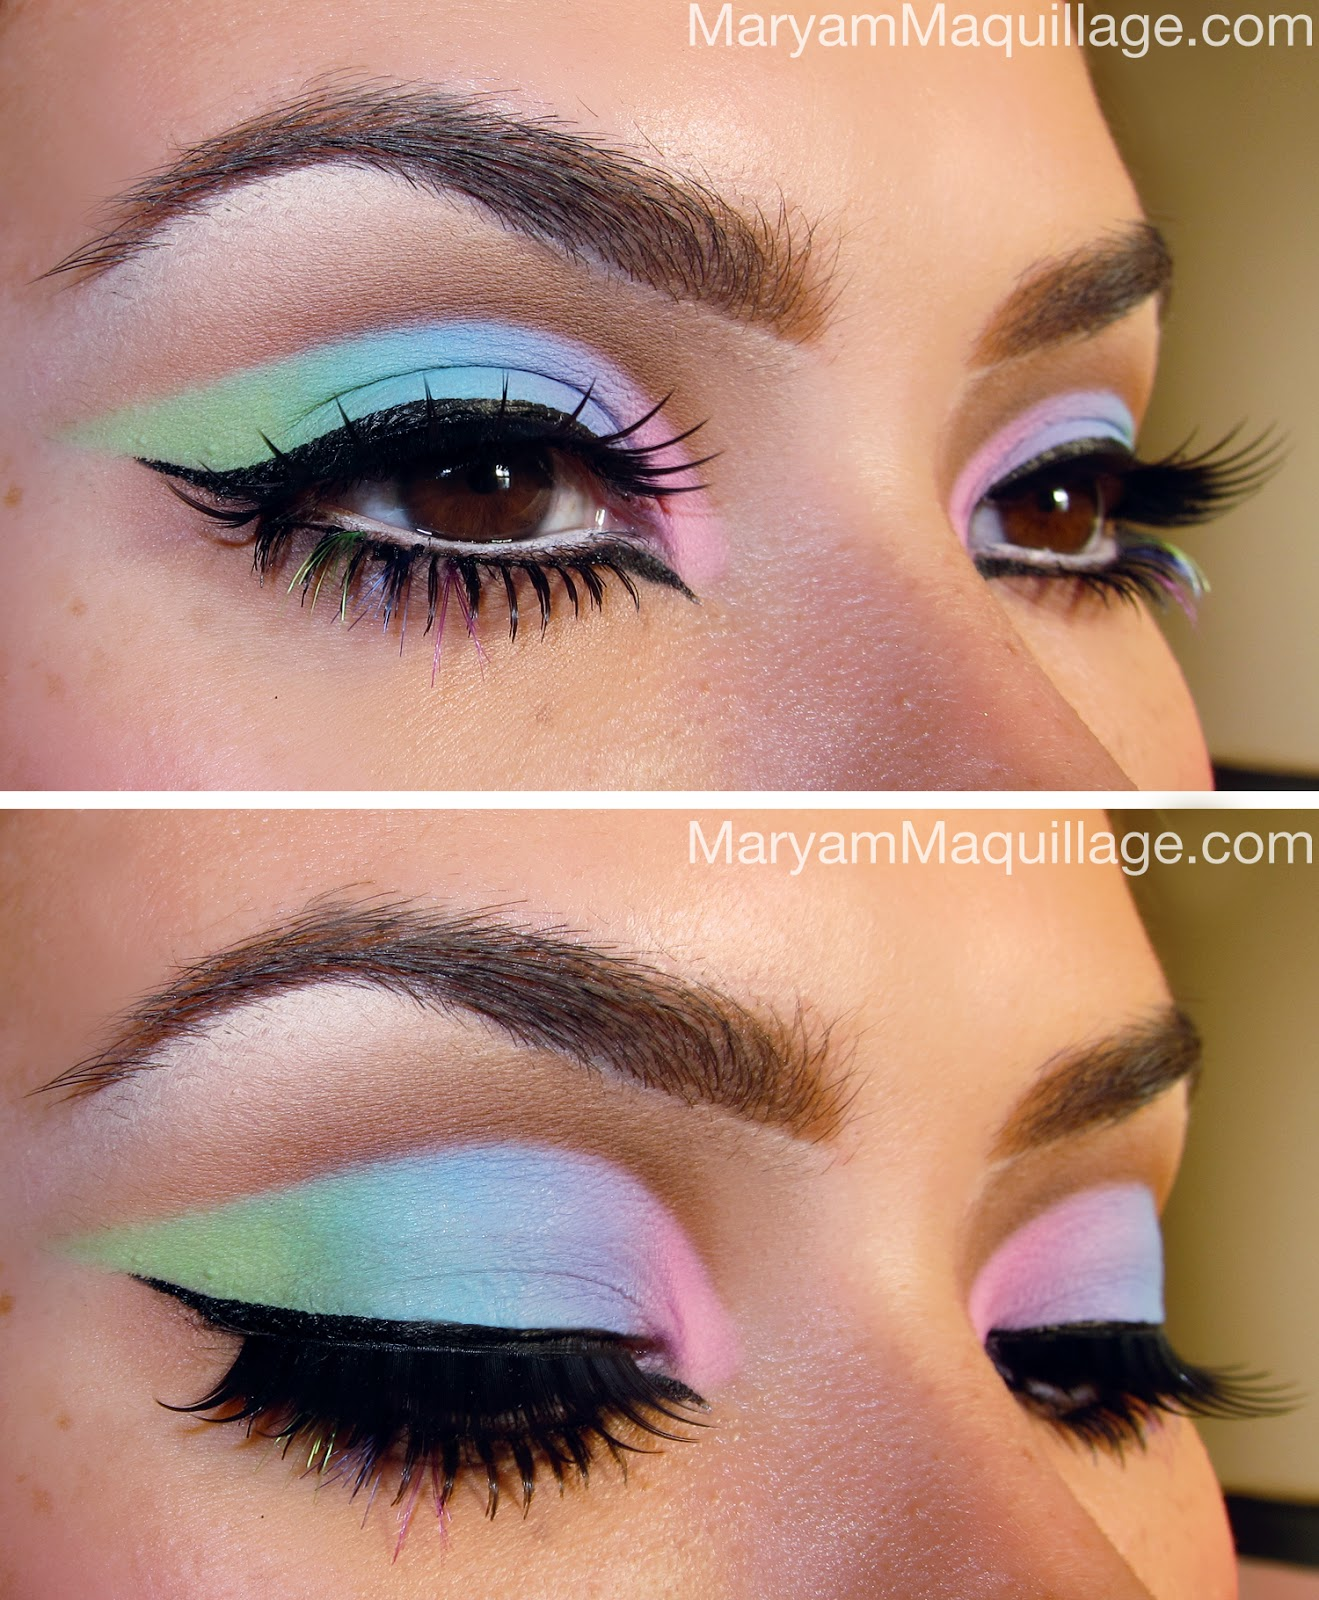 Maryam Maquillage: Cut-Crease Pastel Rainbows